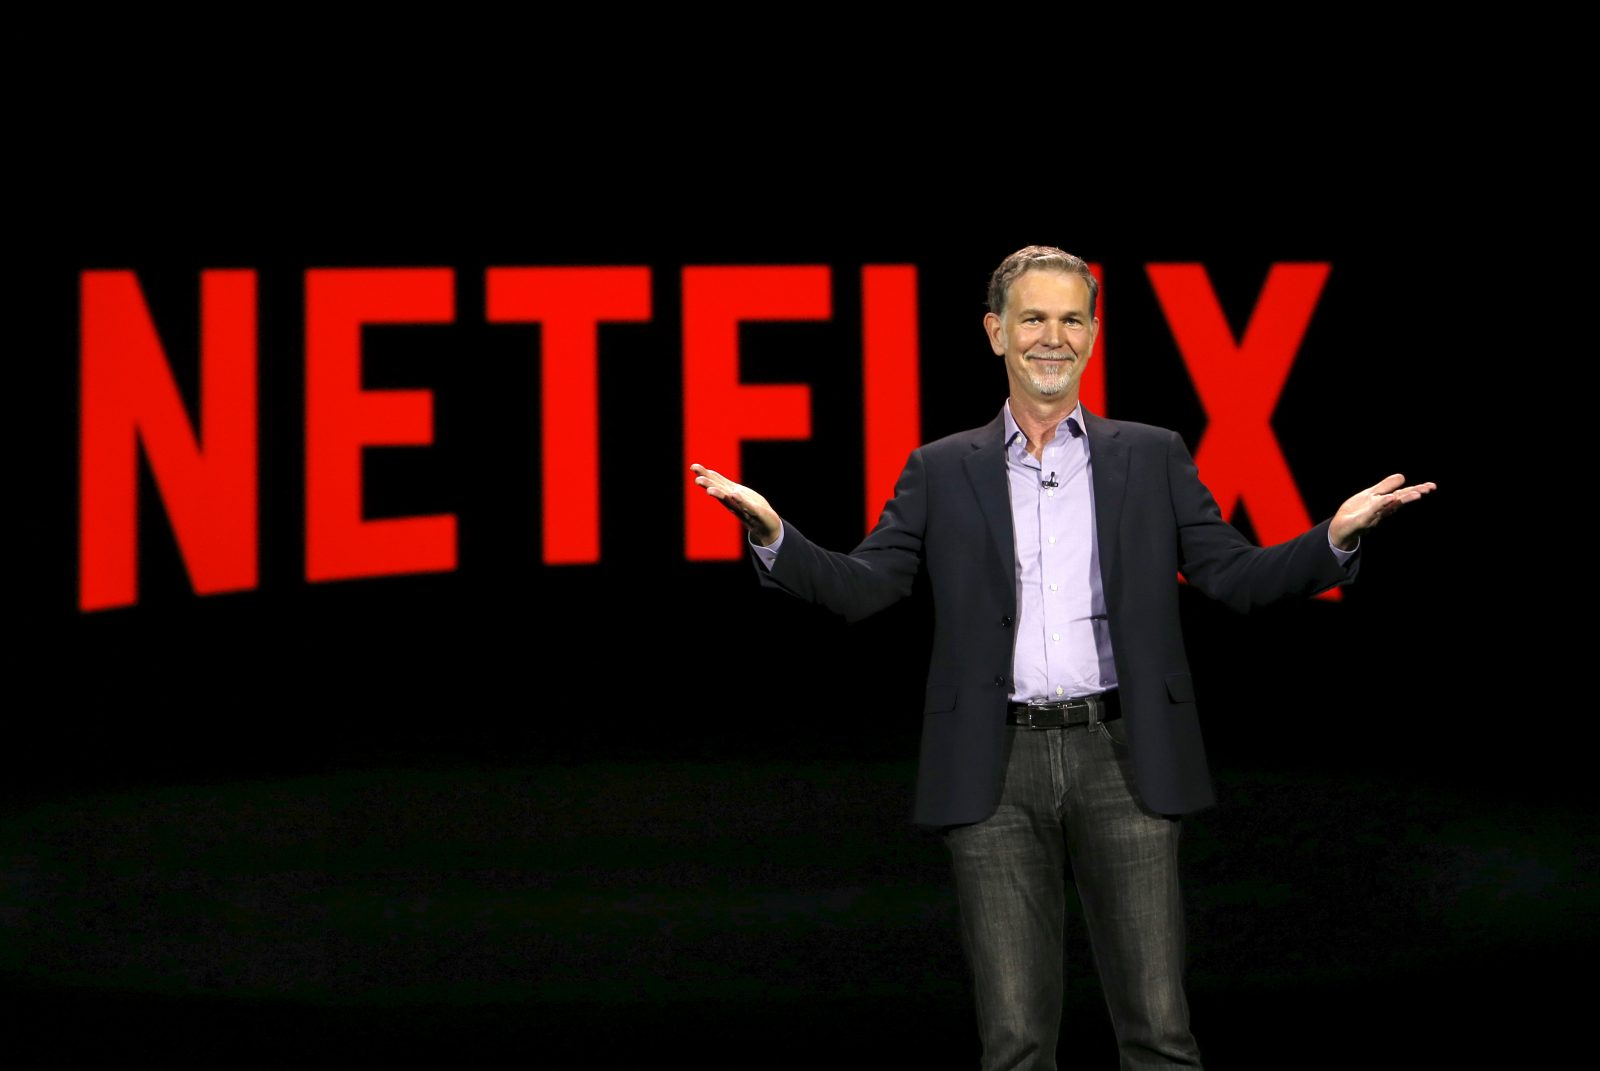 Netflix co-founder and co-CEO Reed Hastings in front of a Netflix logo